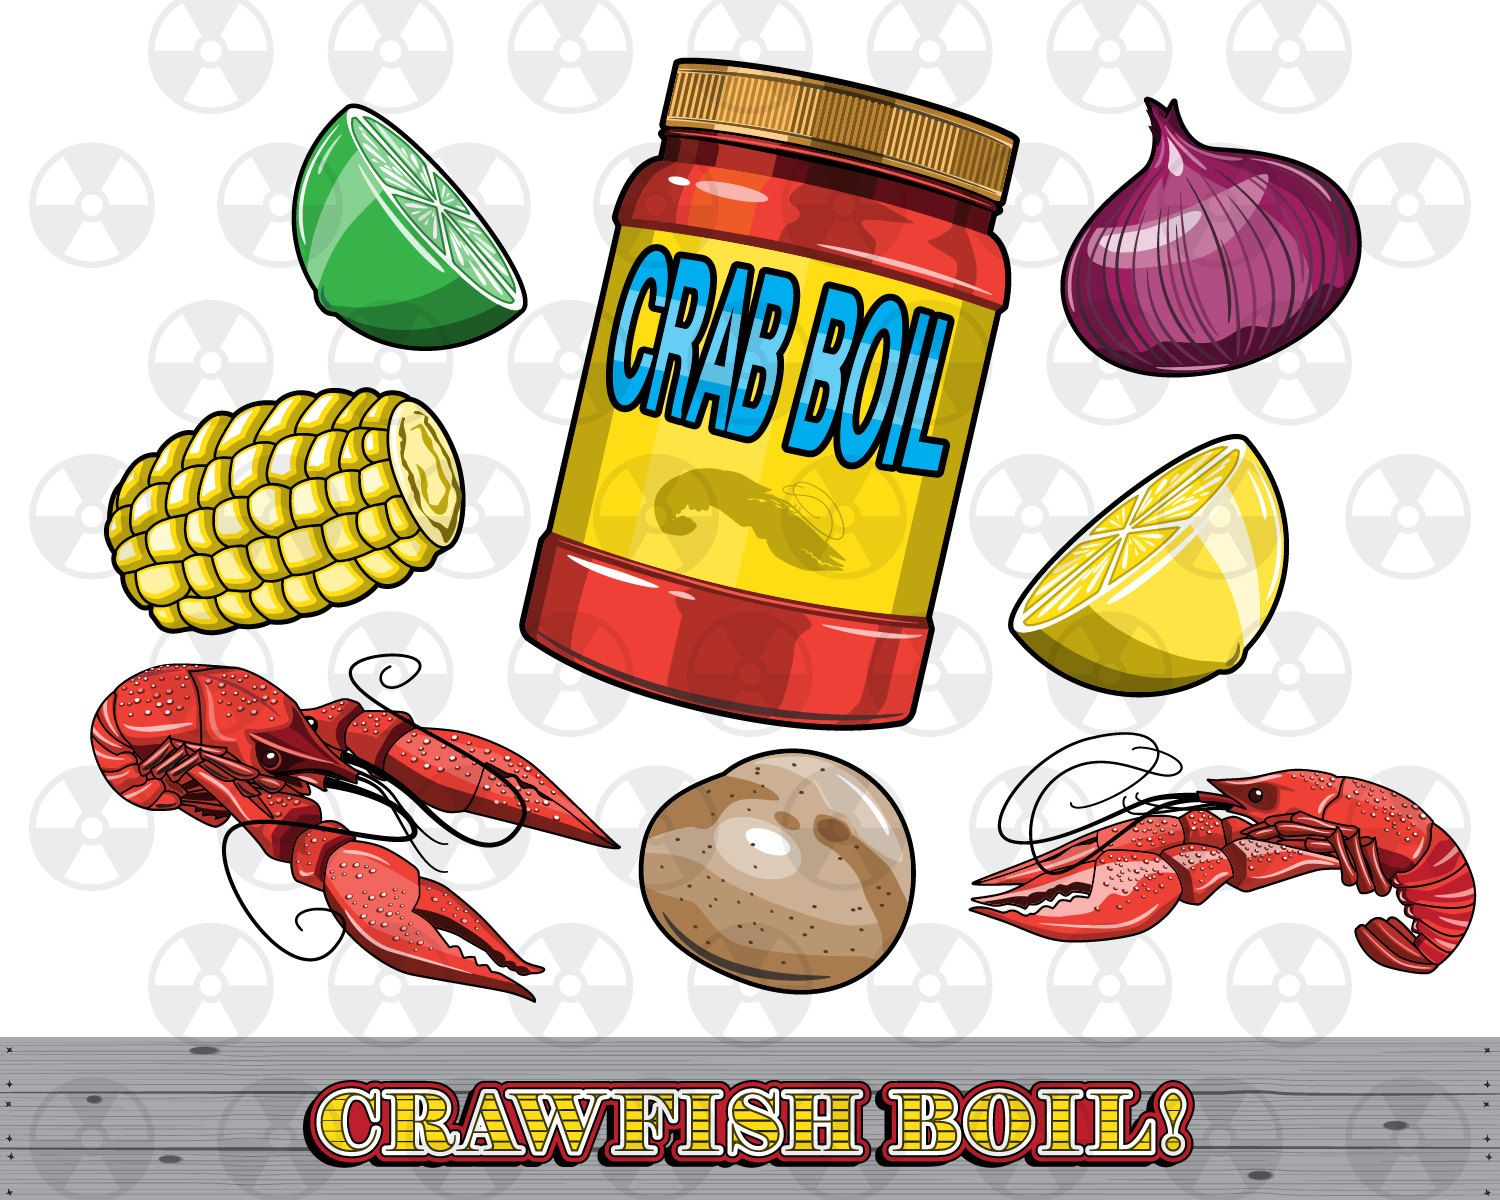 louisiana vector clipart crawfish boil clipart crawfish digital cartoon seafood clipart scrapbook making instant download by digitalmeltdown on etsy [ 1500 x 1200 Pixel ]